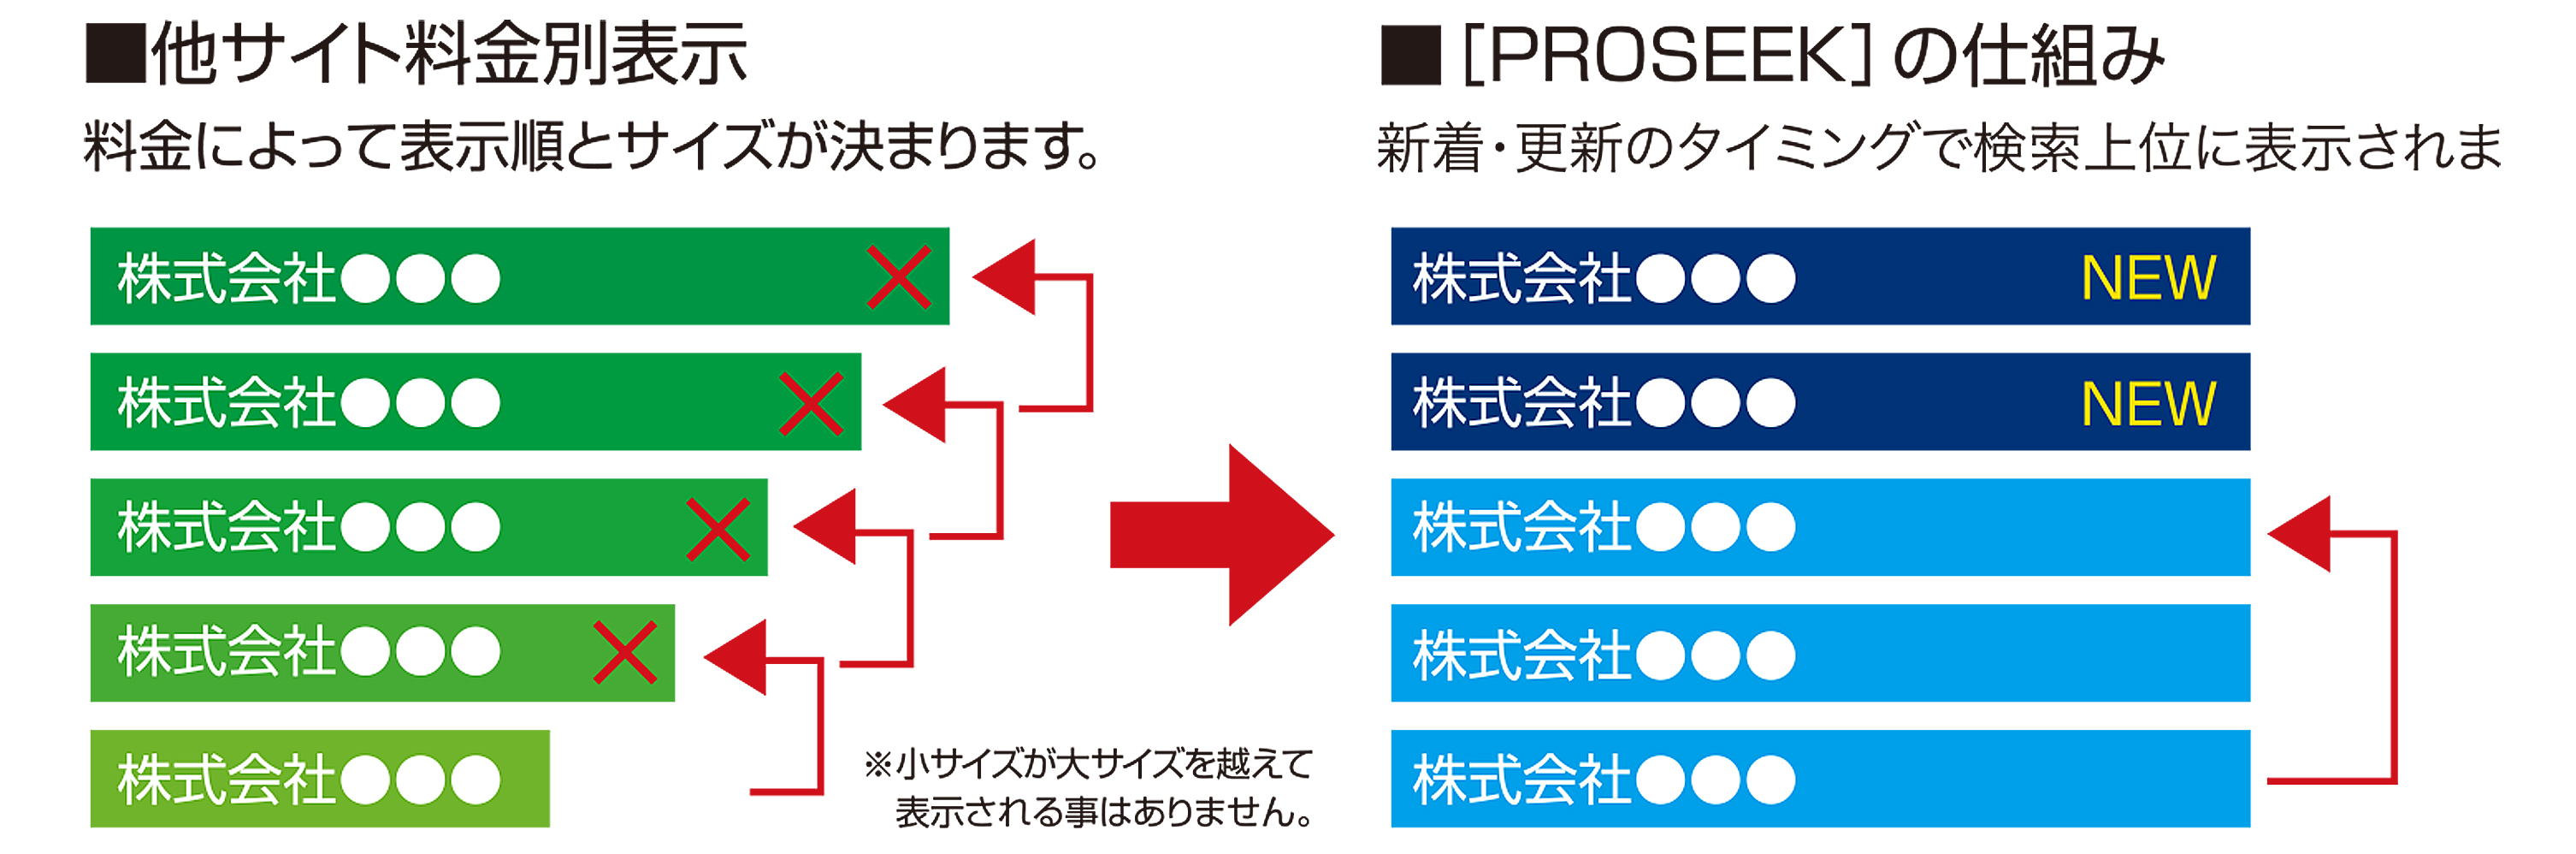 PROSEEK_document2_ph